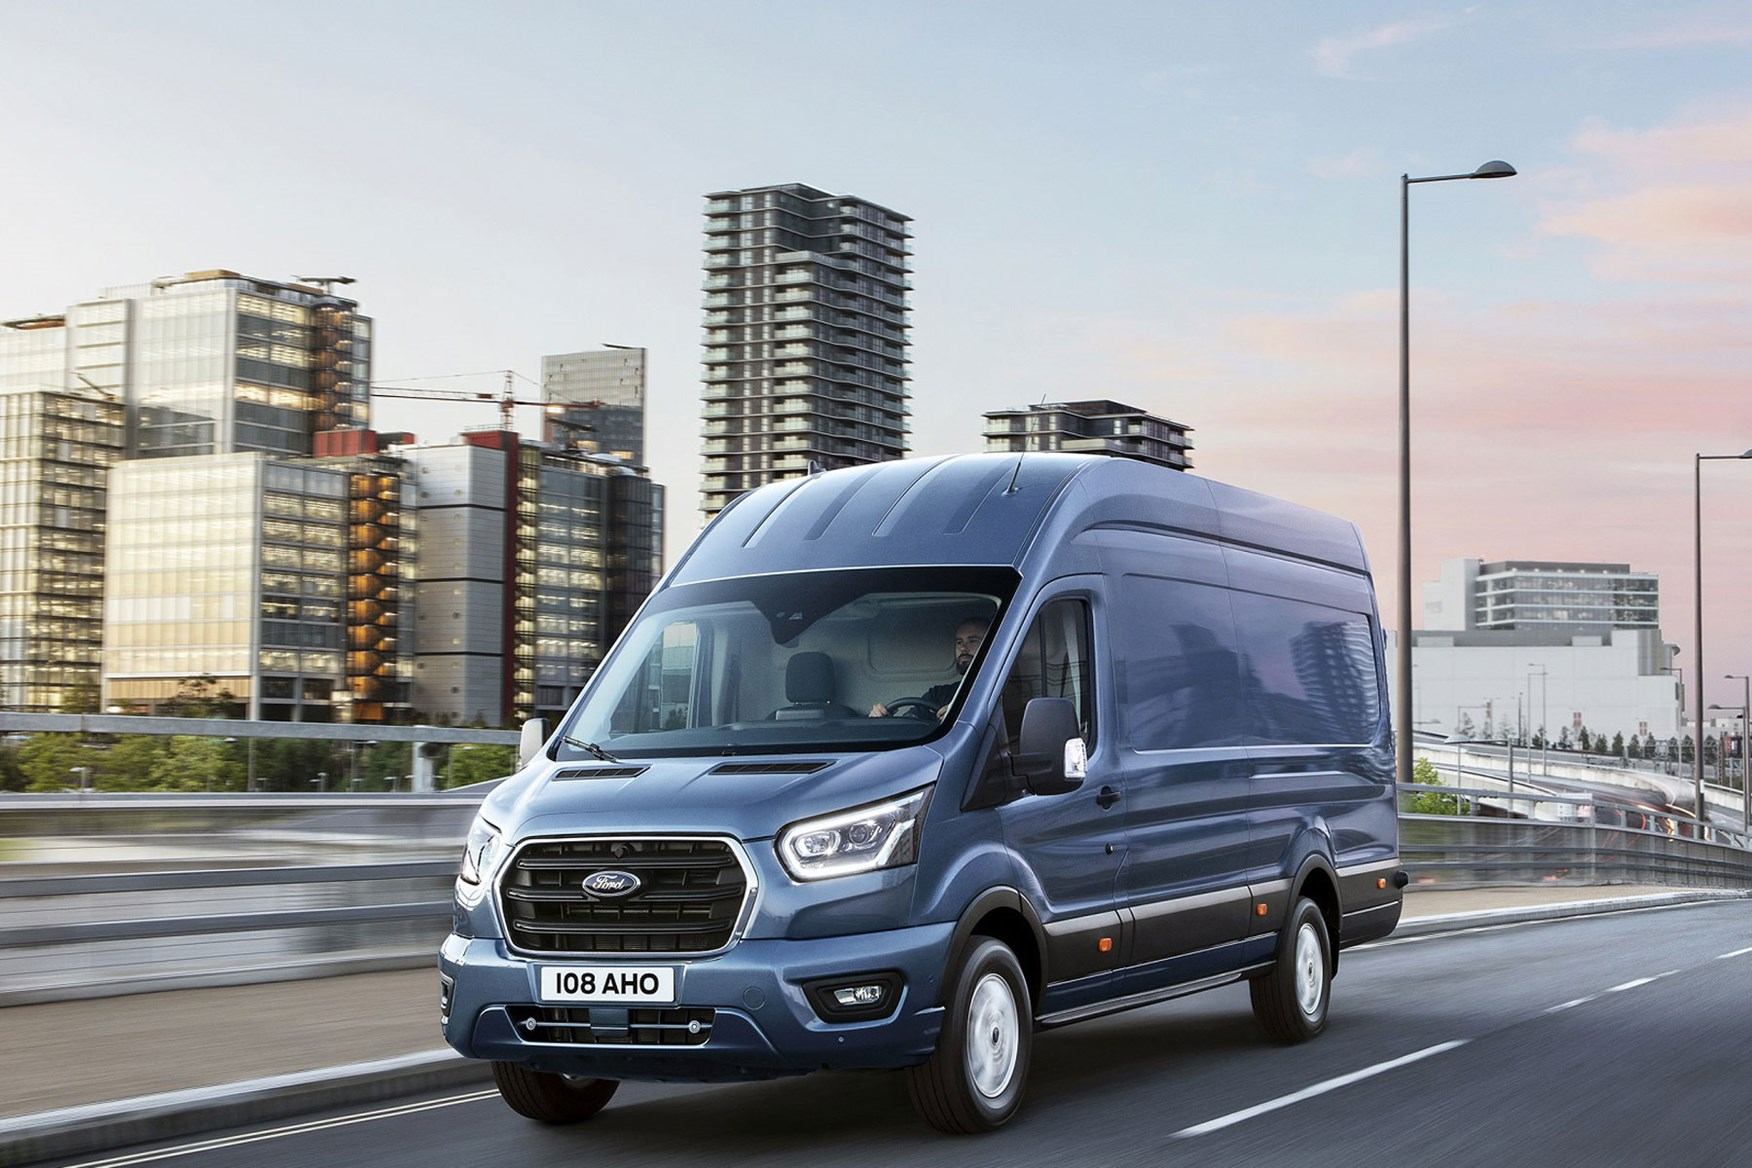 New 2019 Ford Transit - official details and pictures of major large van facelift | Parkers